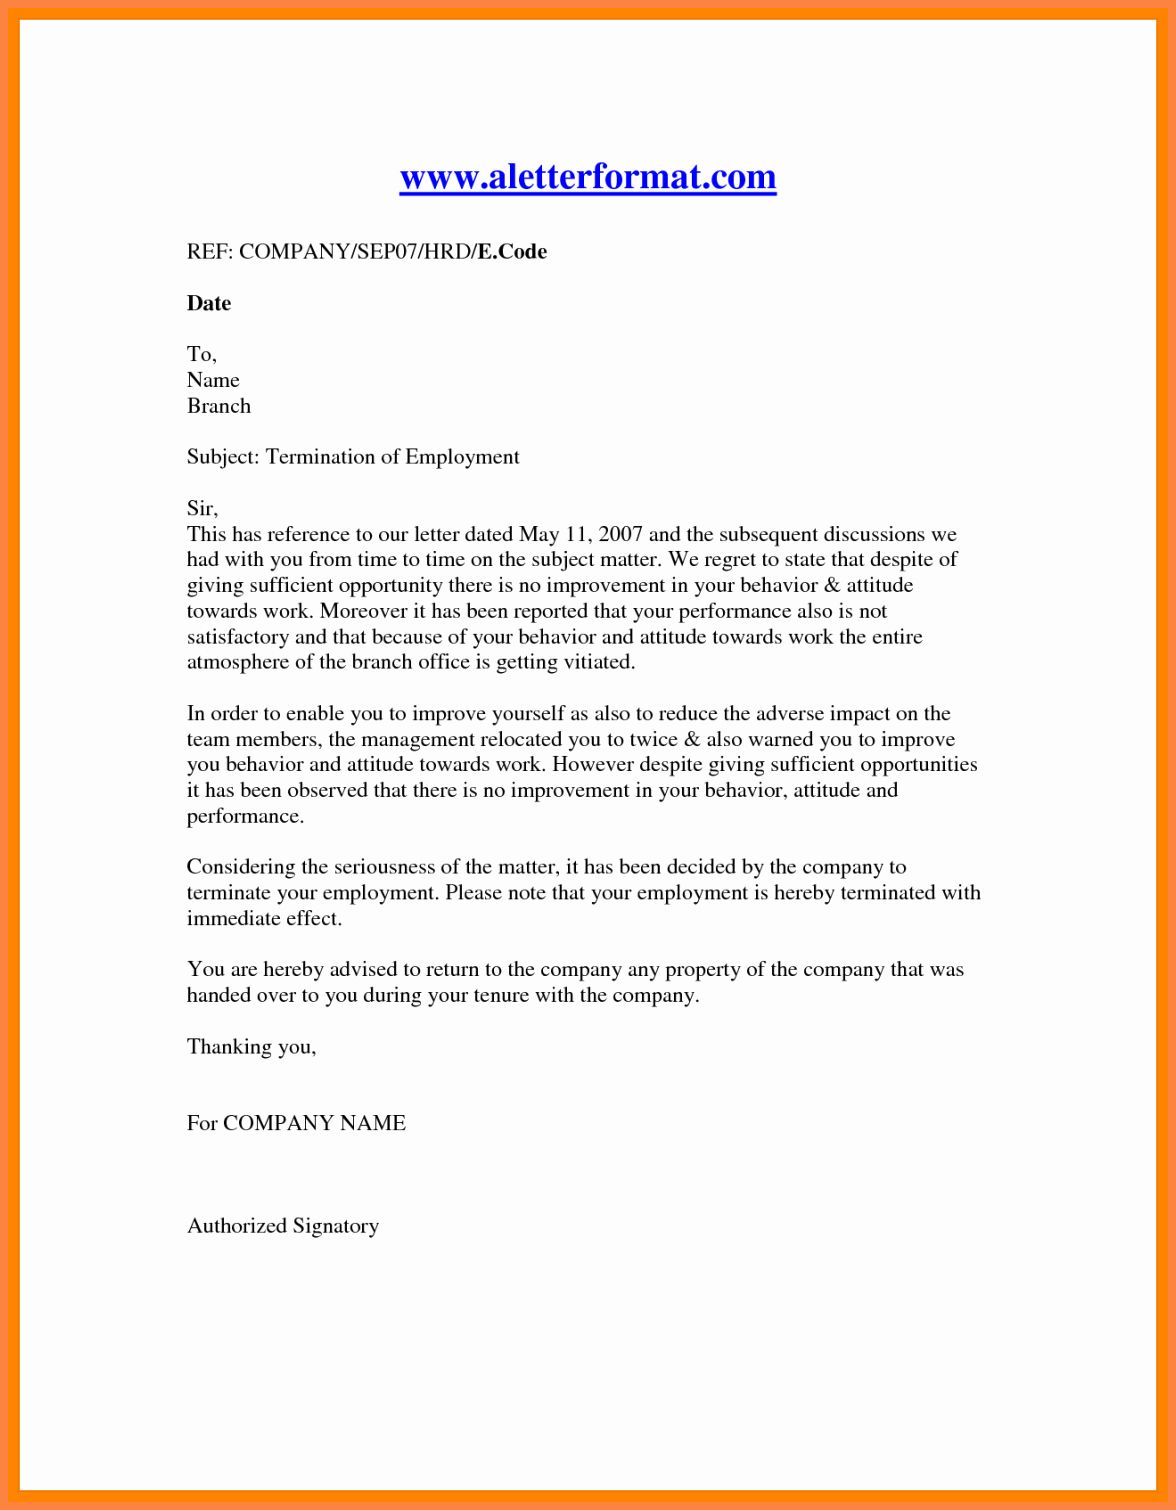 Sample Termination Of Employment Letter Fresh 11 Employment Termination Notice Sample Lettering Simple Cover Letter Template Book Cover Design Template